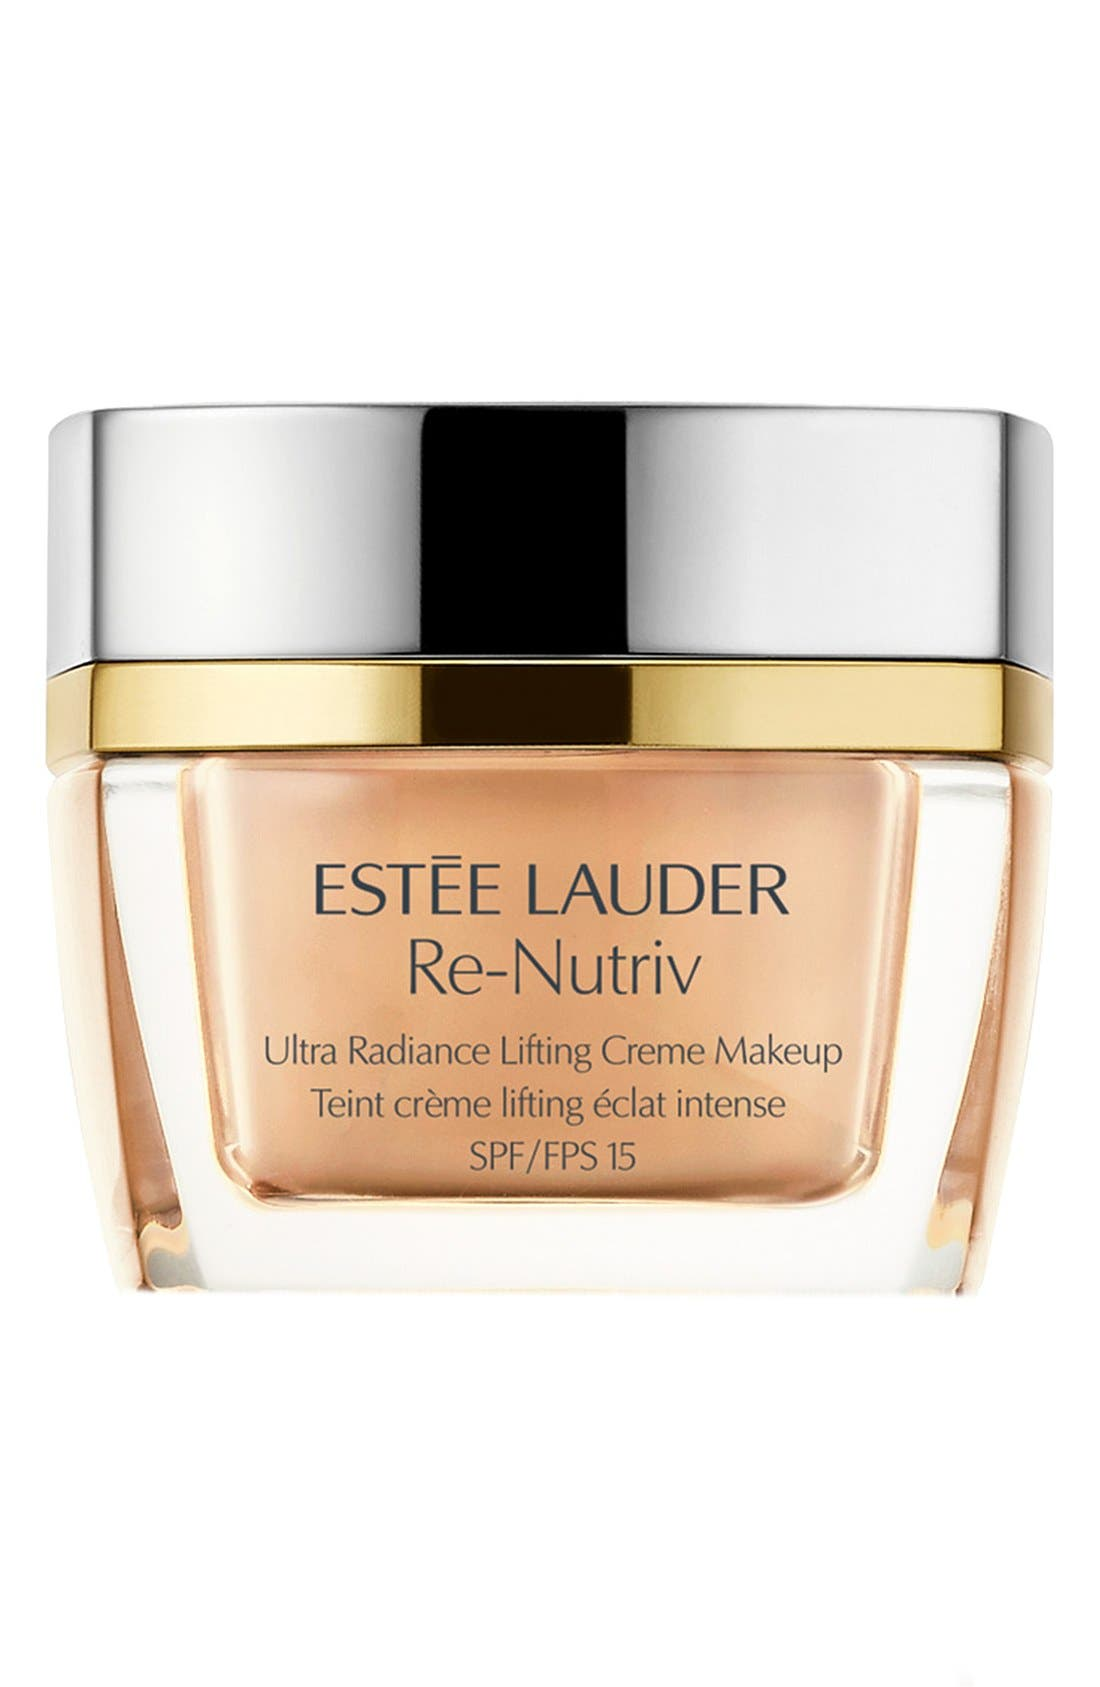 Estée Lauder 'Re-Nutriv' Ultra Radiance Lifting Crème Makeup